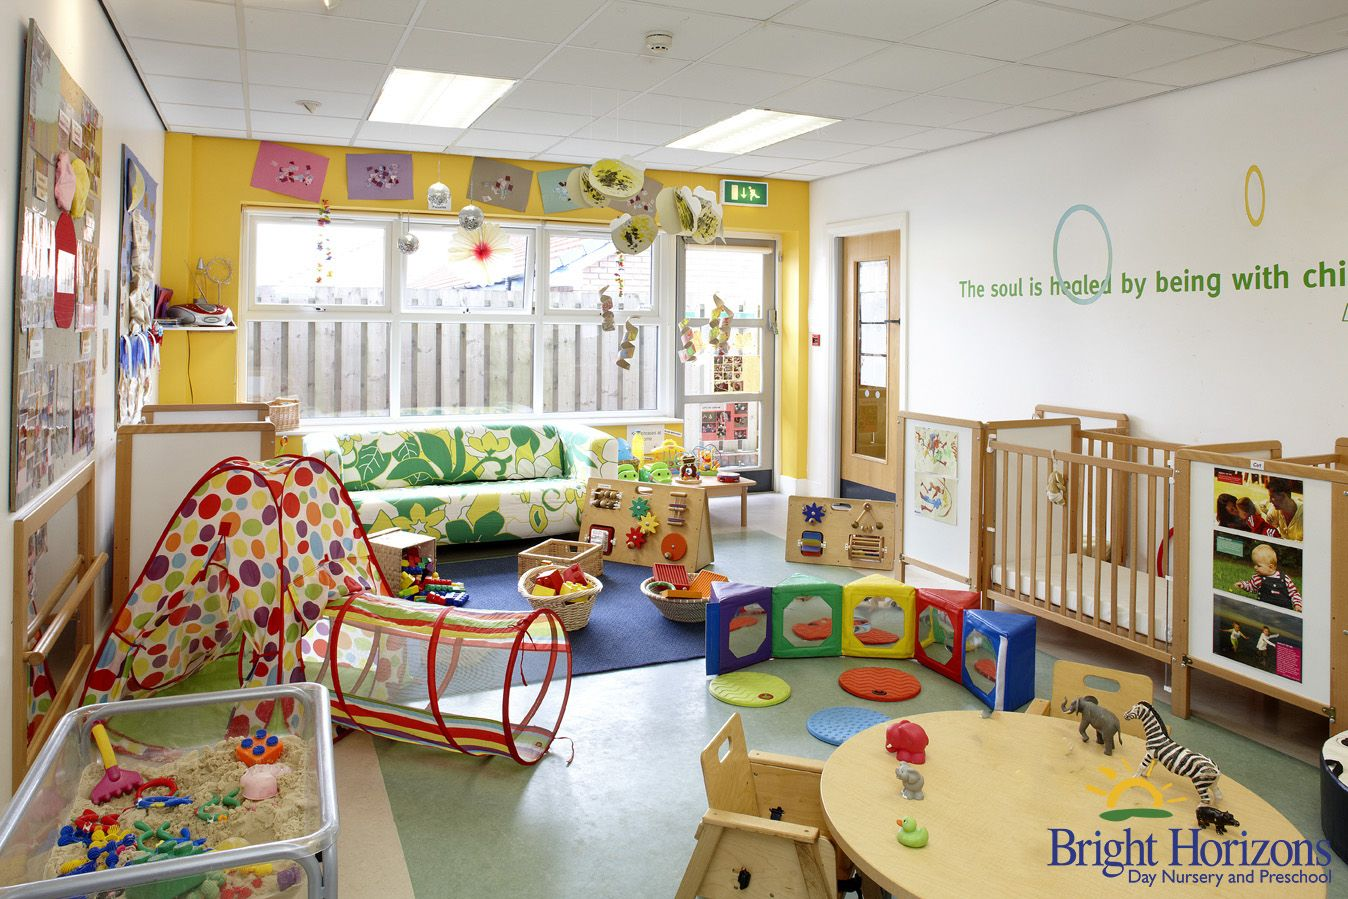 Bright Horizons Nursery In Broadgreen Liverpool Is